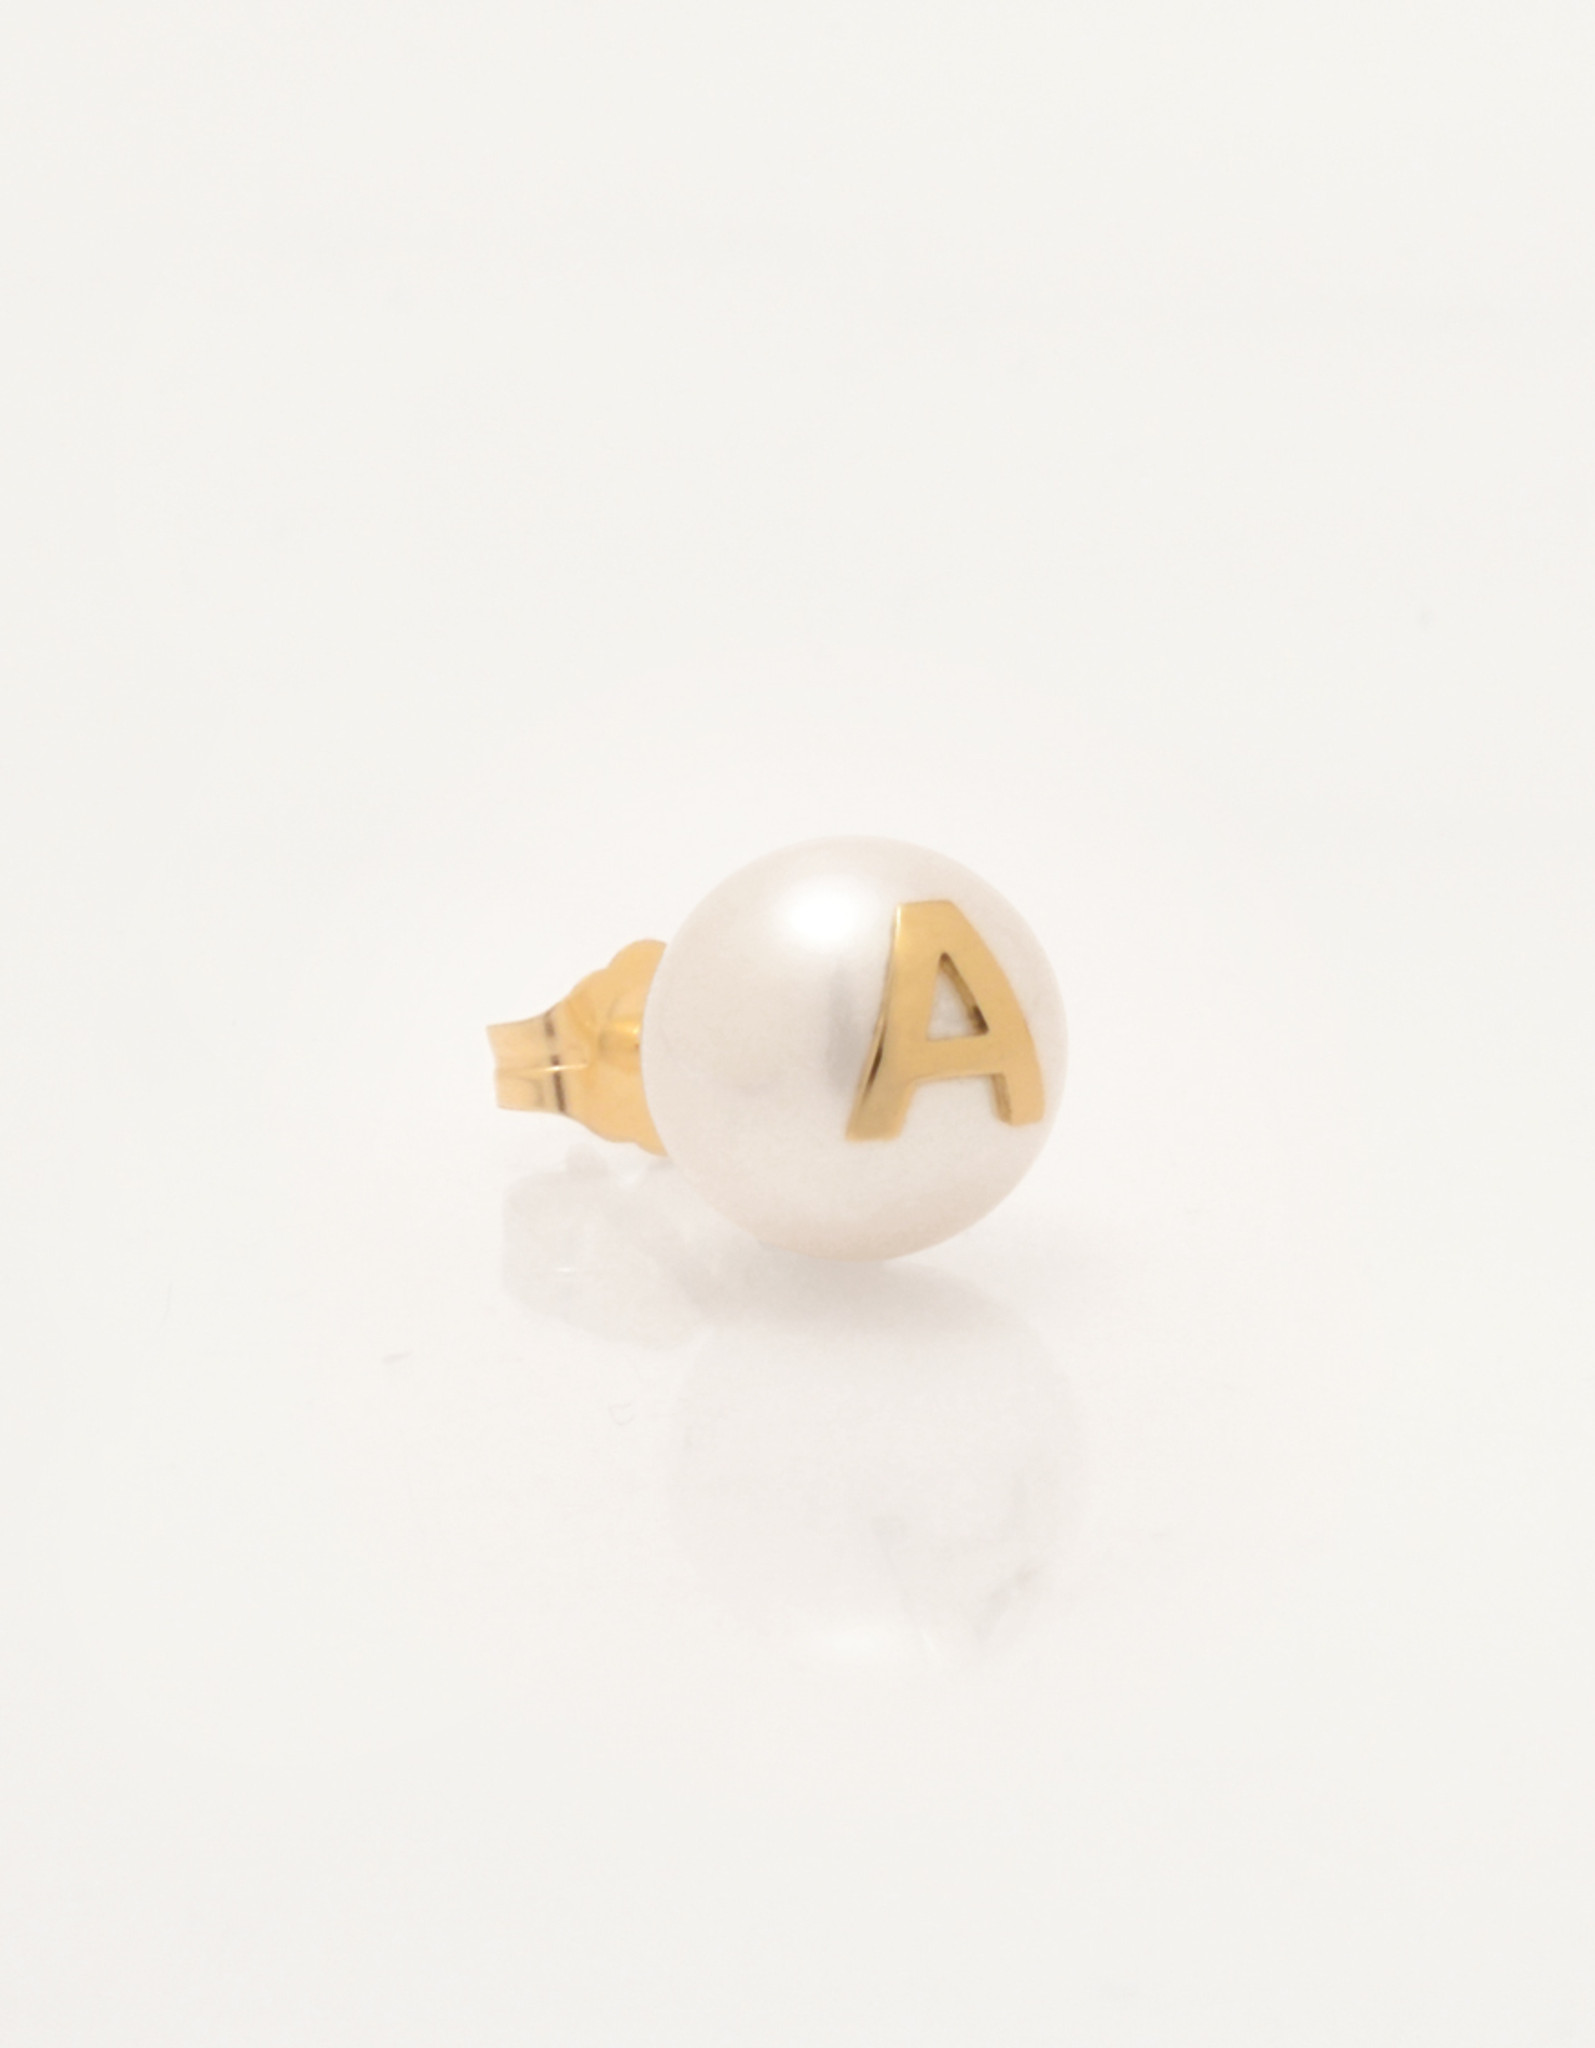 Single-Cultured_Freshwater_Pearl_Earring_with_14k_Gold-Initial-Personalized-letter-A-Monogram_by_Jewelry_Designer_Nektar_De_Stagni_8-9mm